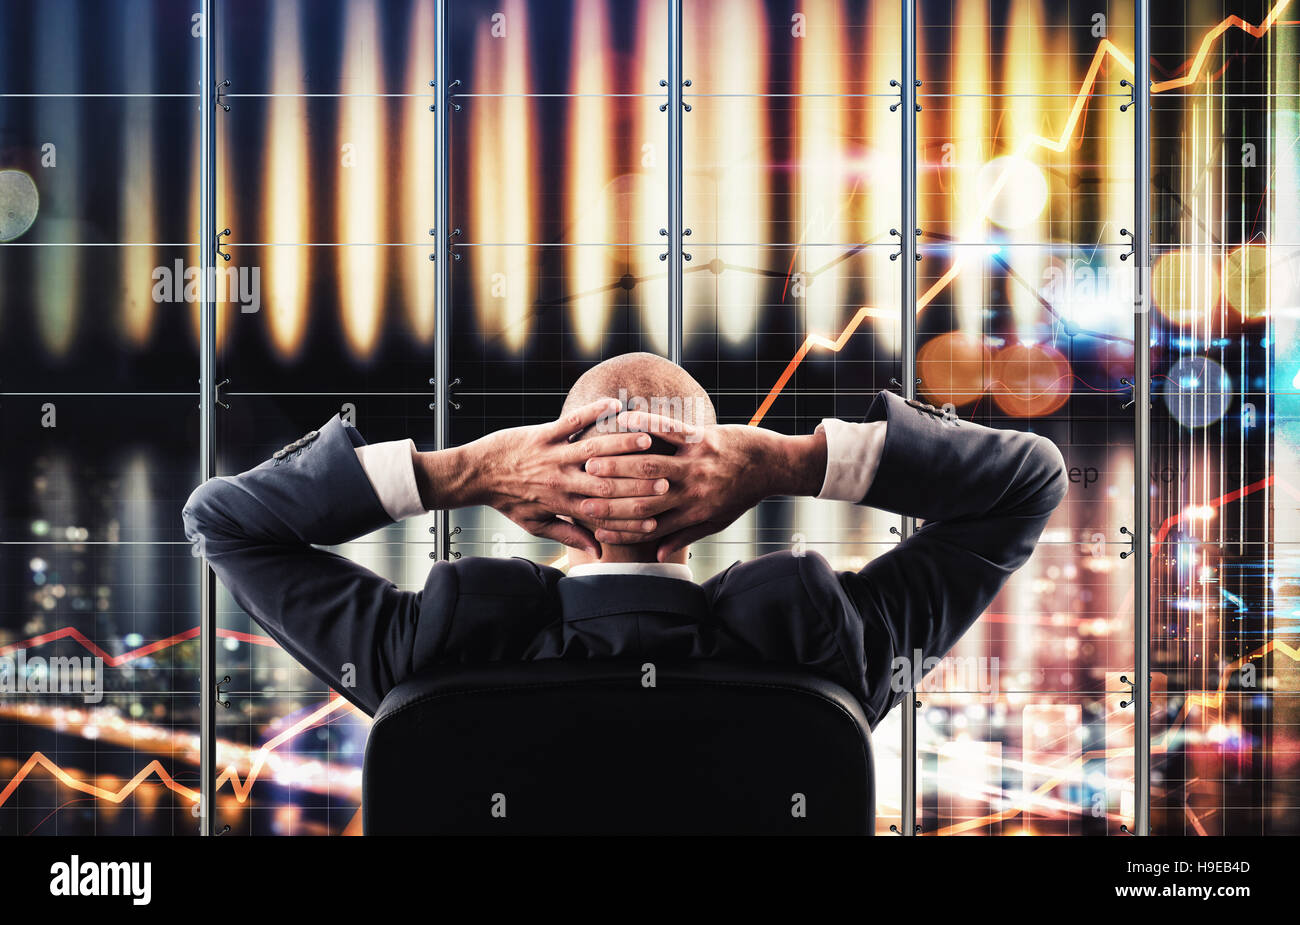 Virtual screen business system - Stock Image